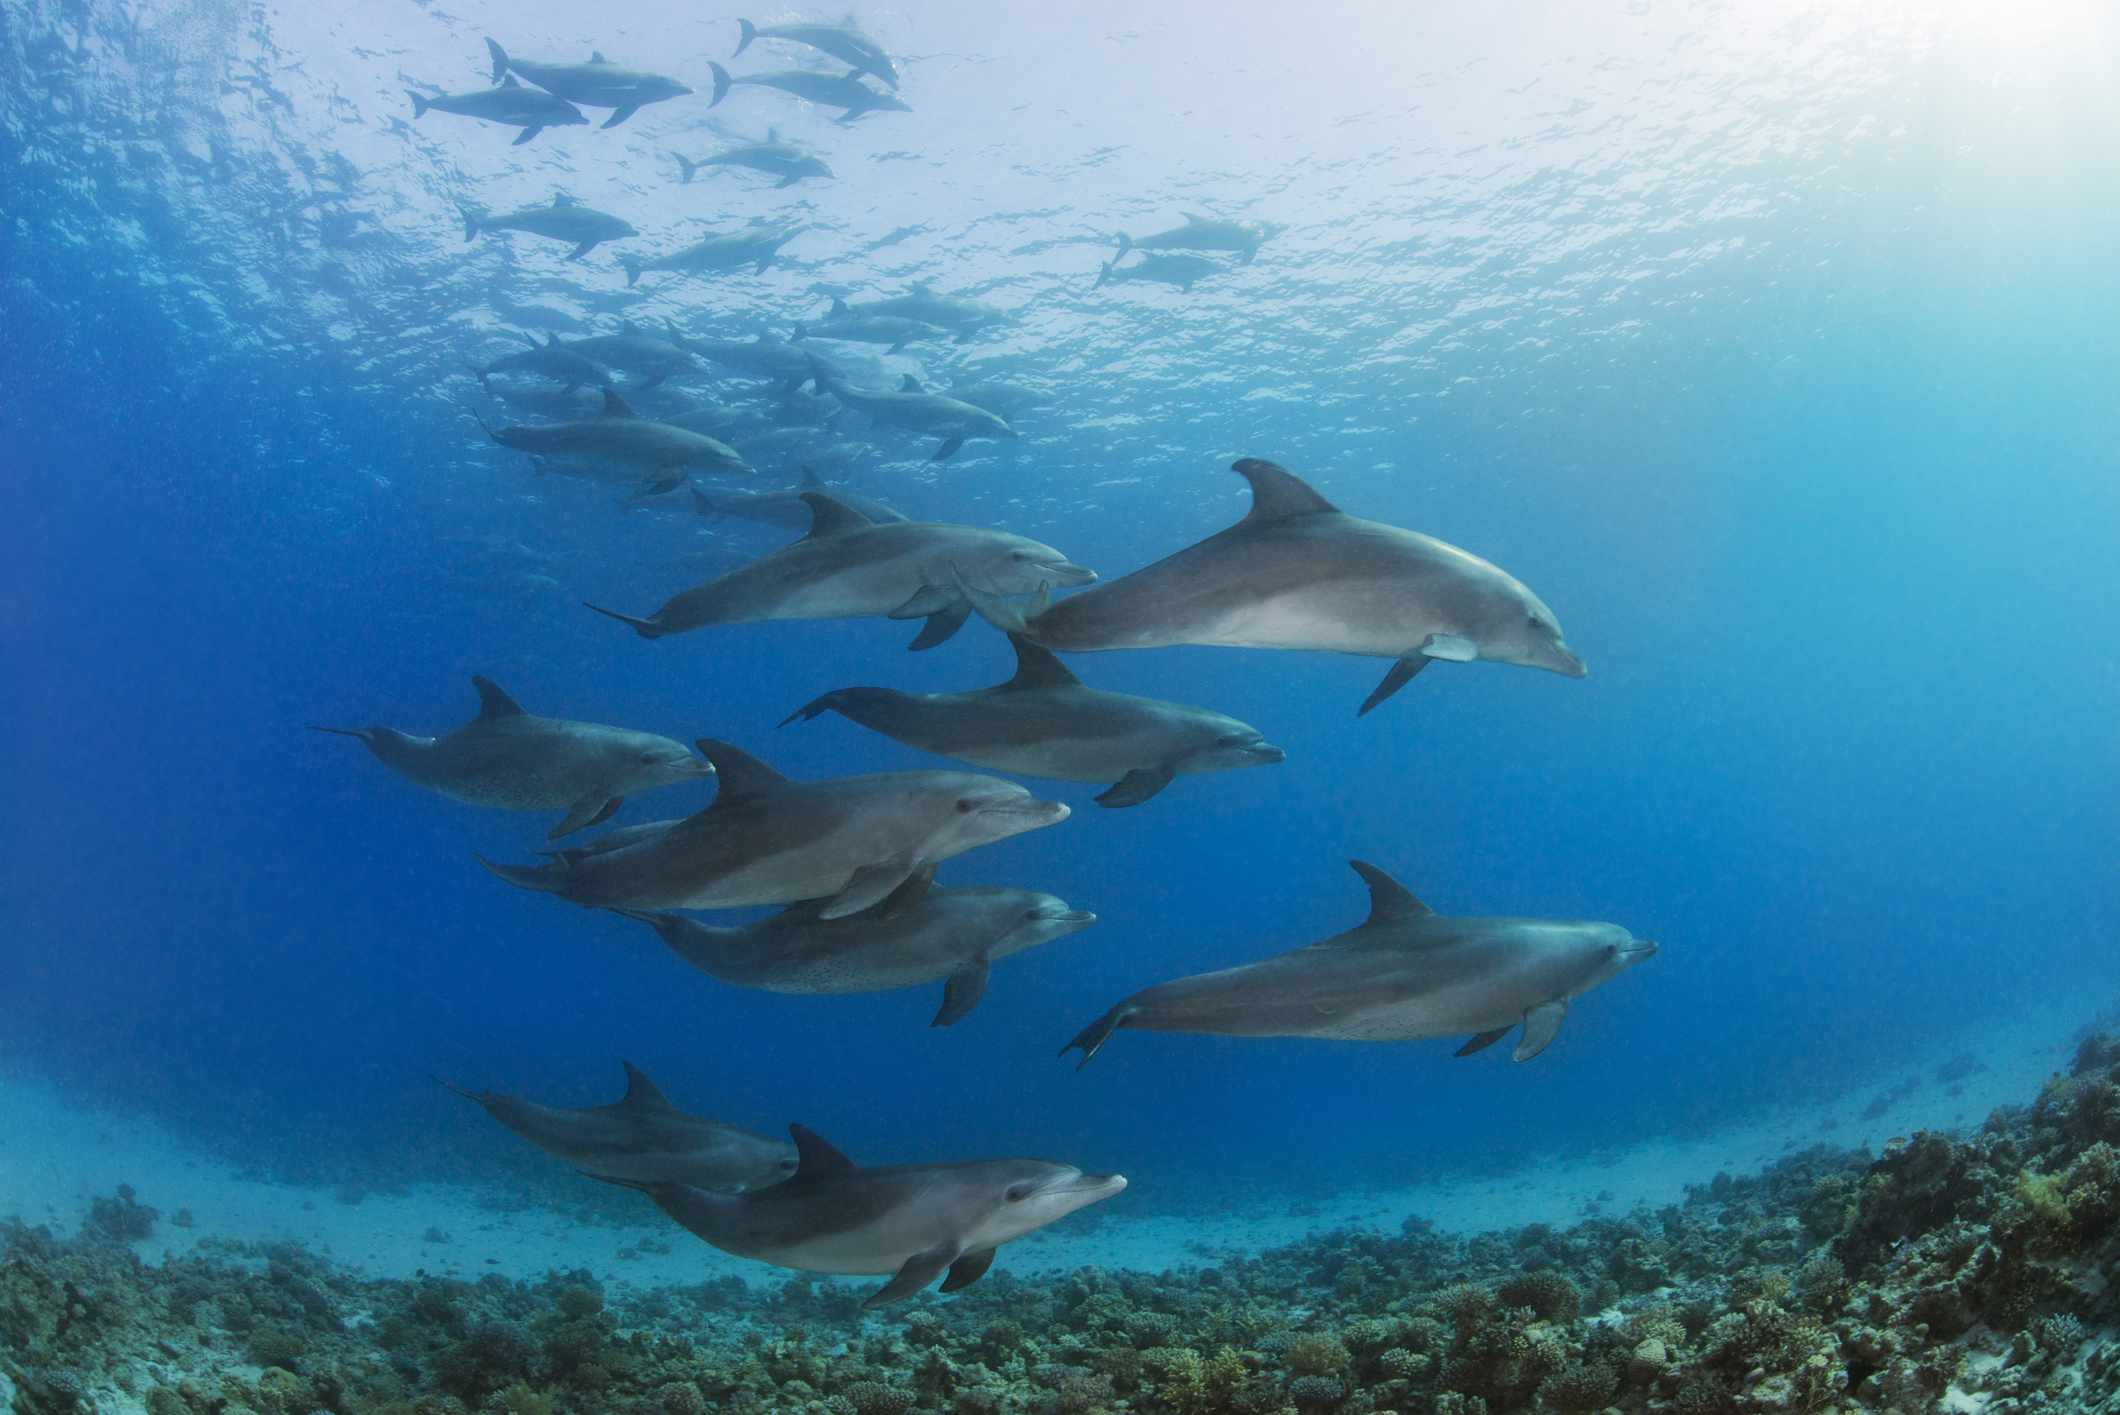 group of dolphins swimming close underwater